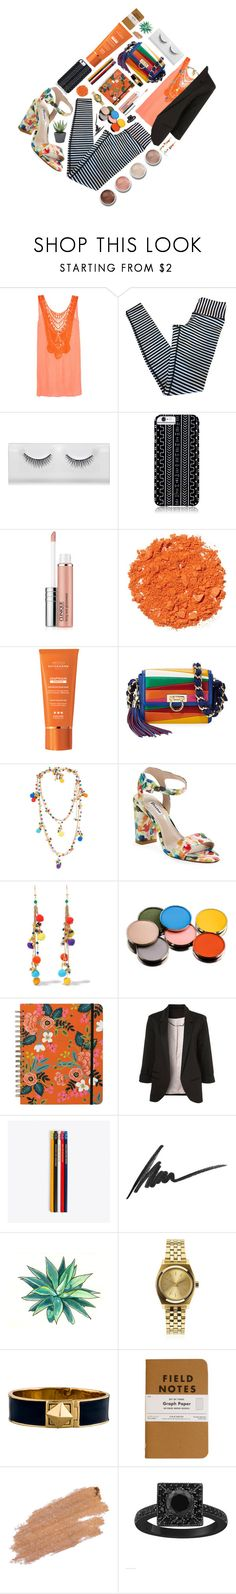 """""""Stay Color"""" by yufrenny ❤ liked on Polyvore featuring Miguelina, lululemon, Savannah Hayes, Clinique, Illamasqua, Institut Esthederm, Salvatore Ferragamo, Rosantica, Dune and Morphe"""